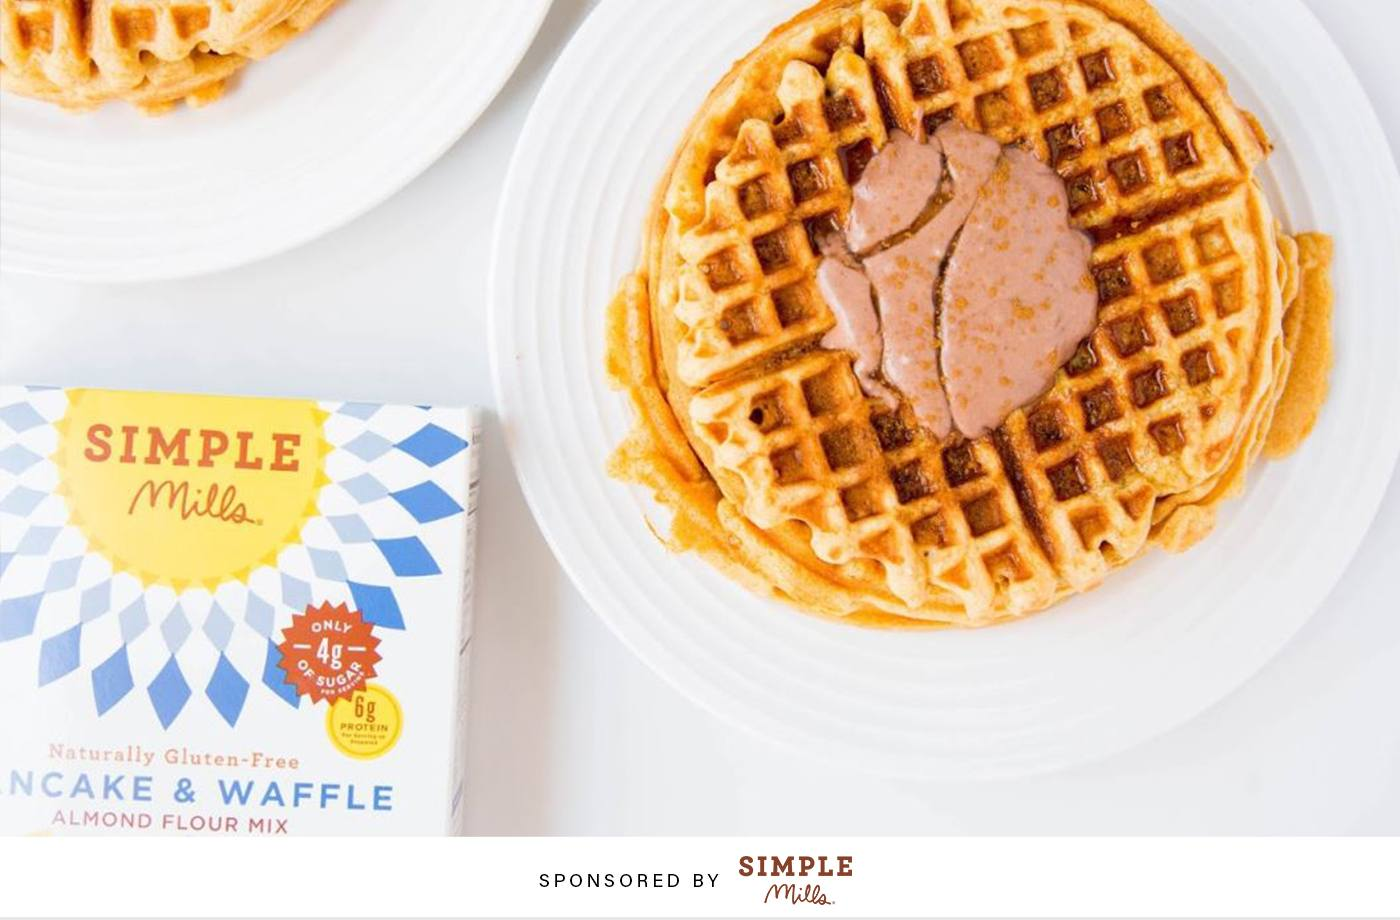 Thumbnail for Sweet potato collagen waffles are real—and you can get the star ingredient at Target